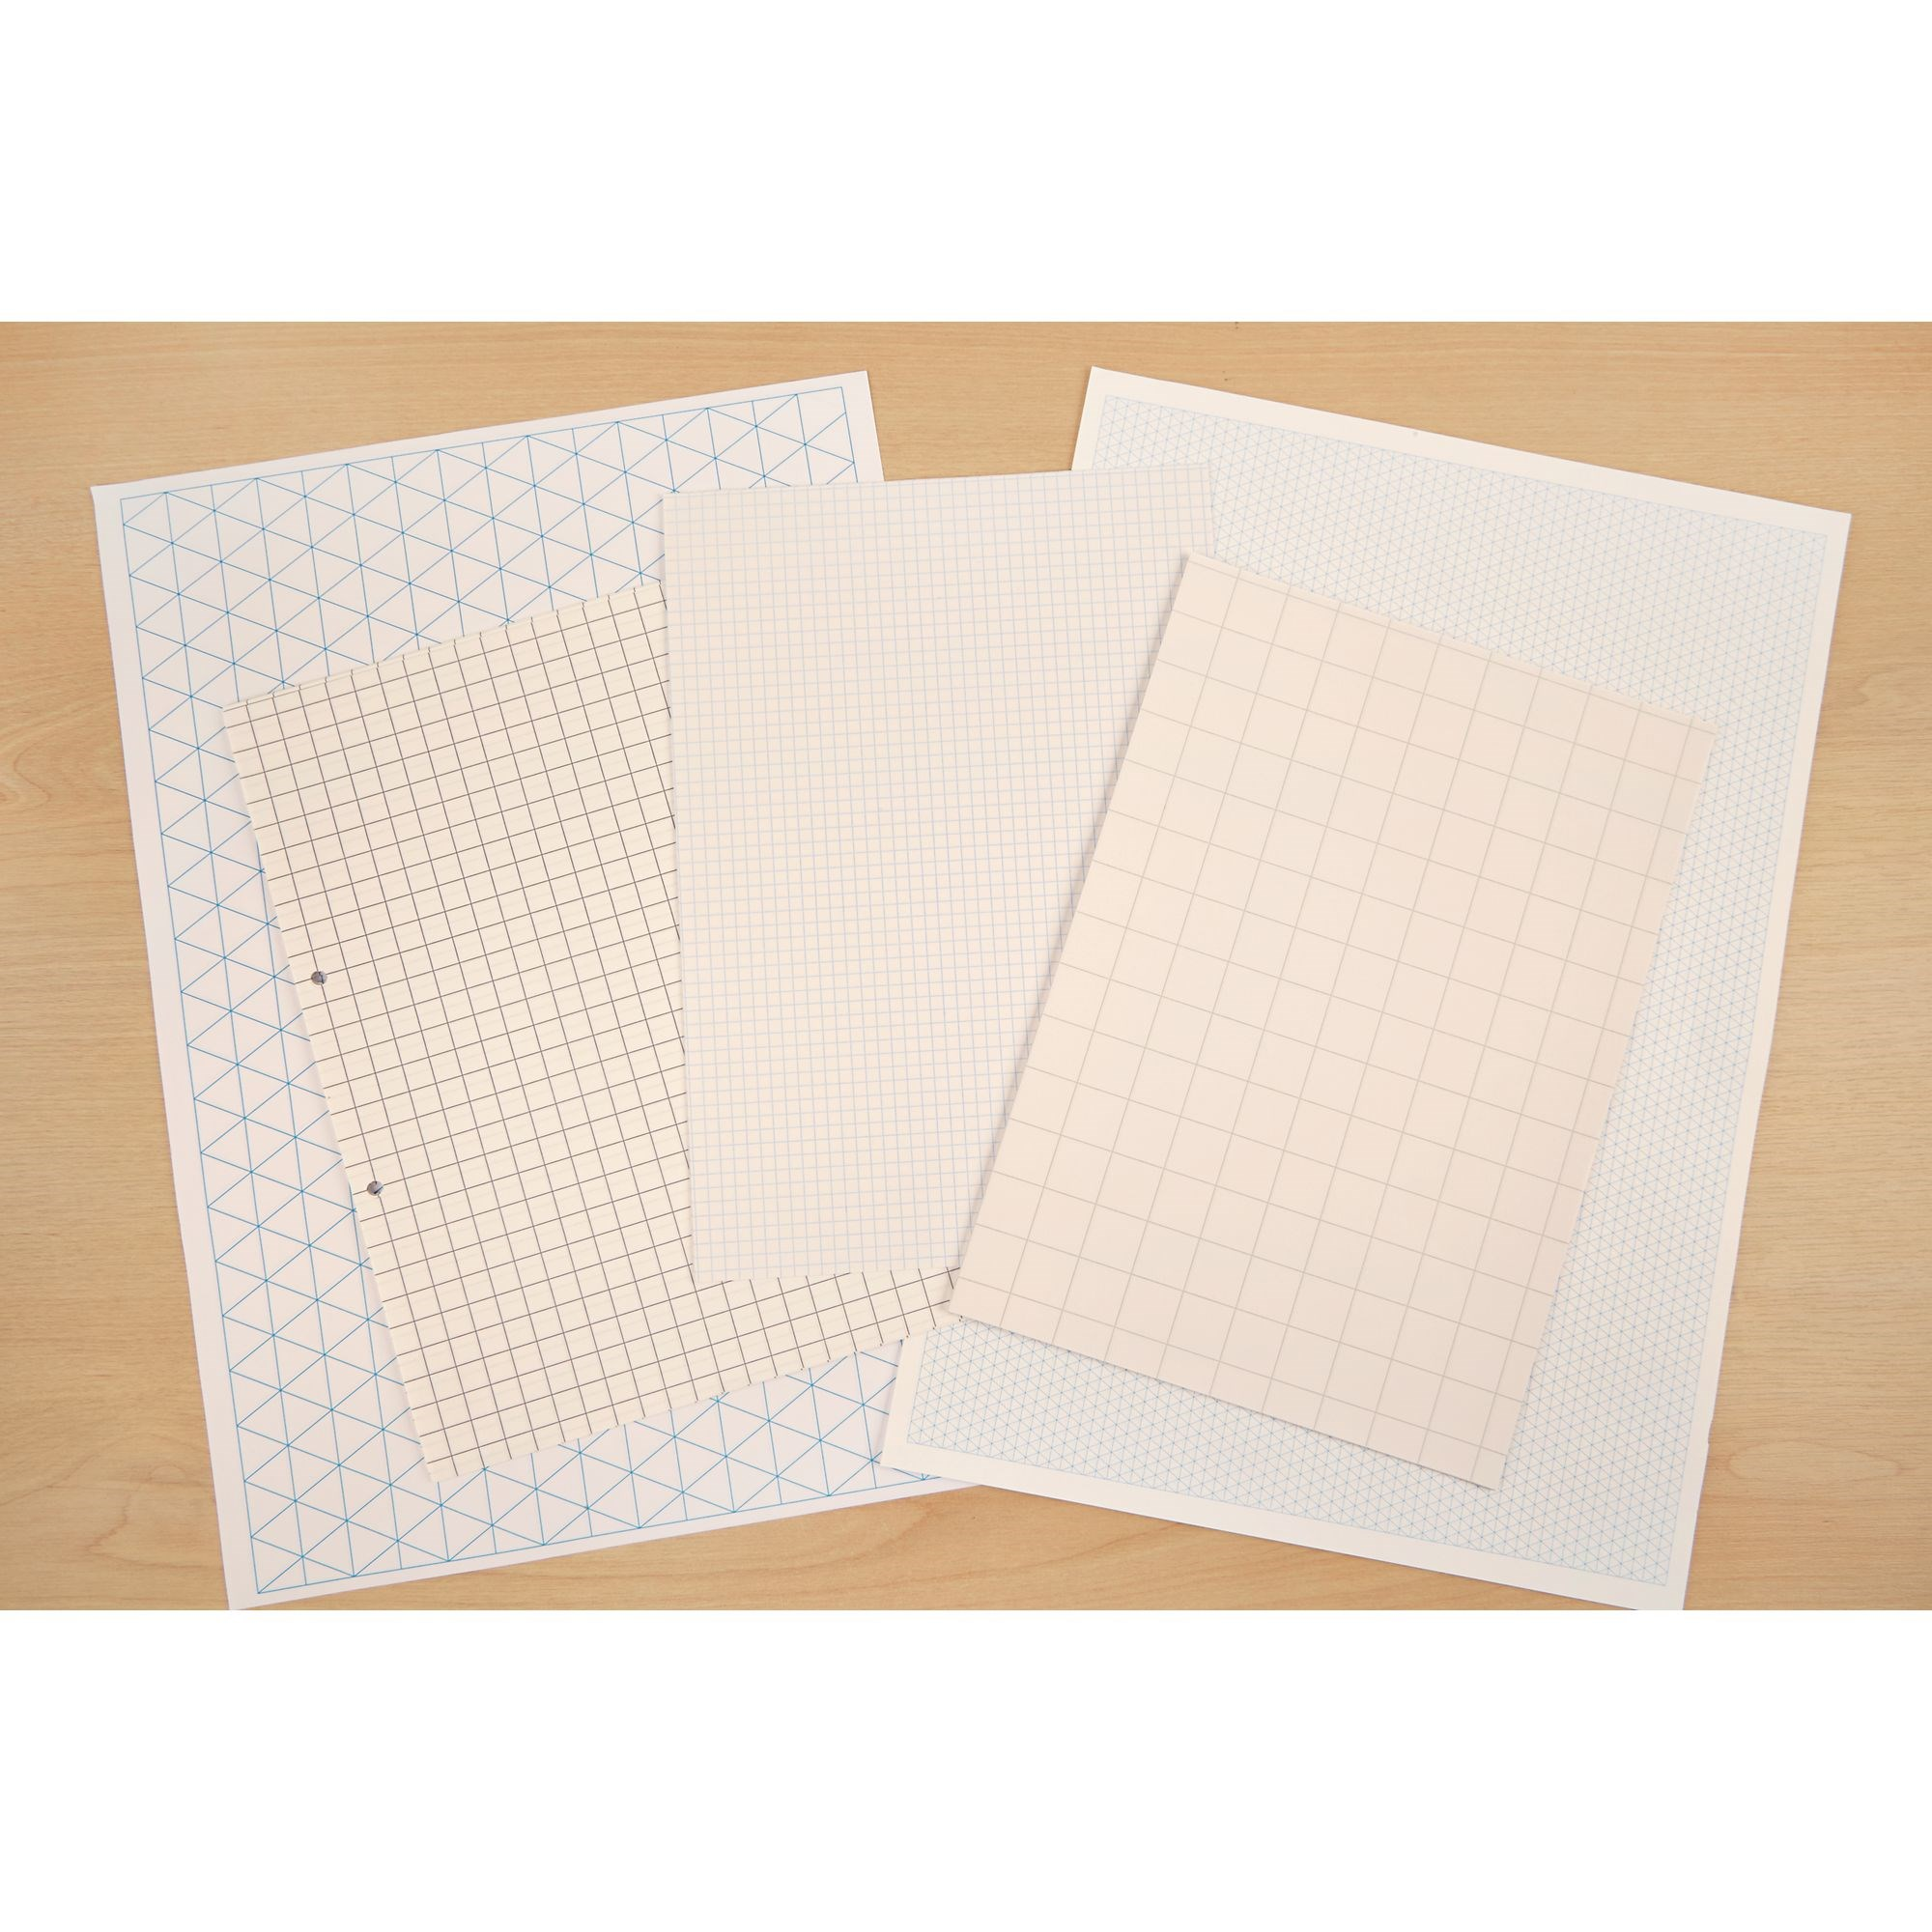 A4 Exercise Paper 10mm Squared 2 Hole Punched (Pack of 500)